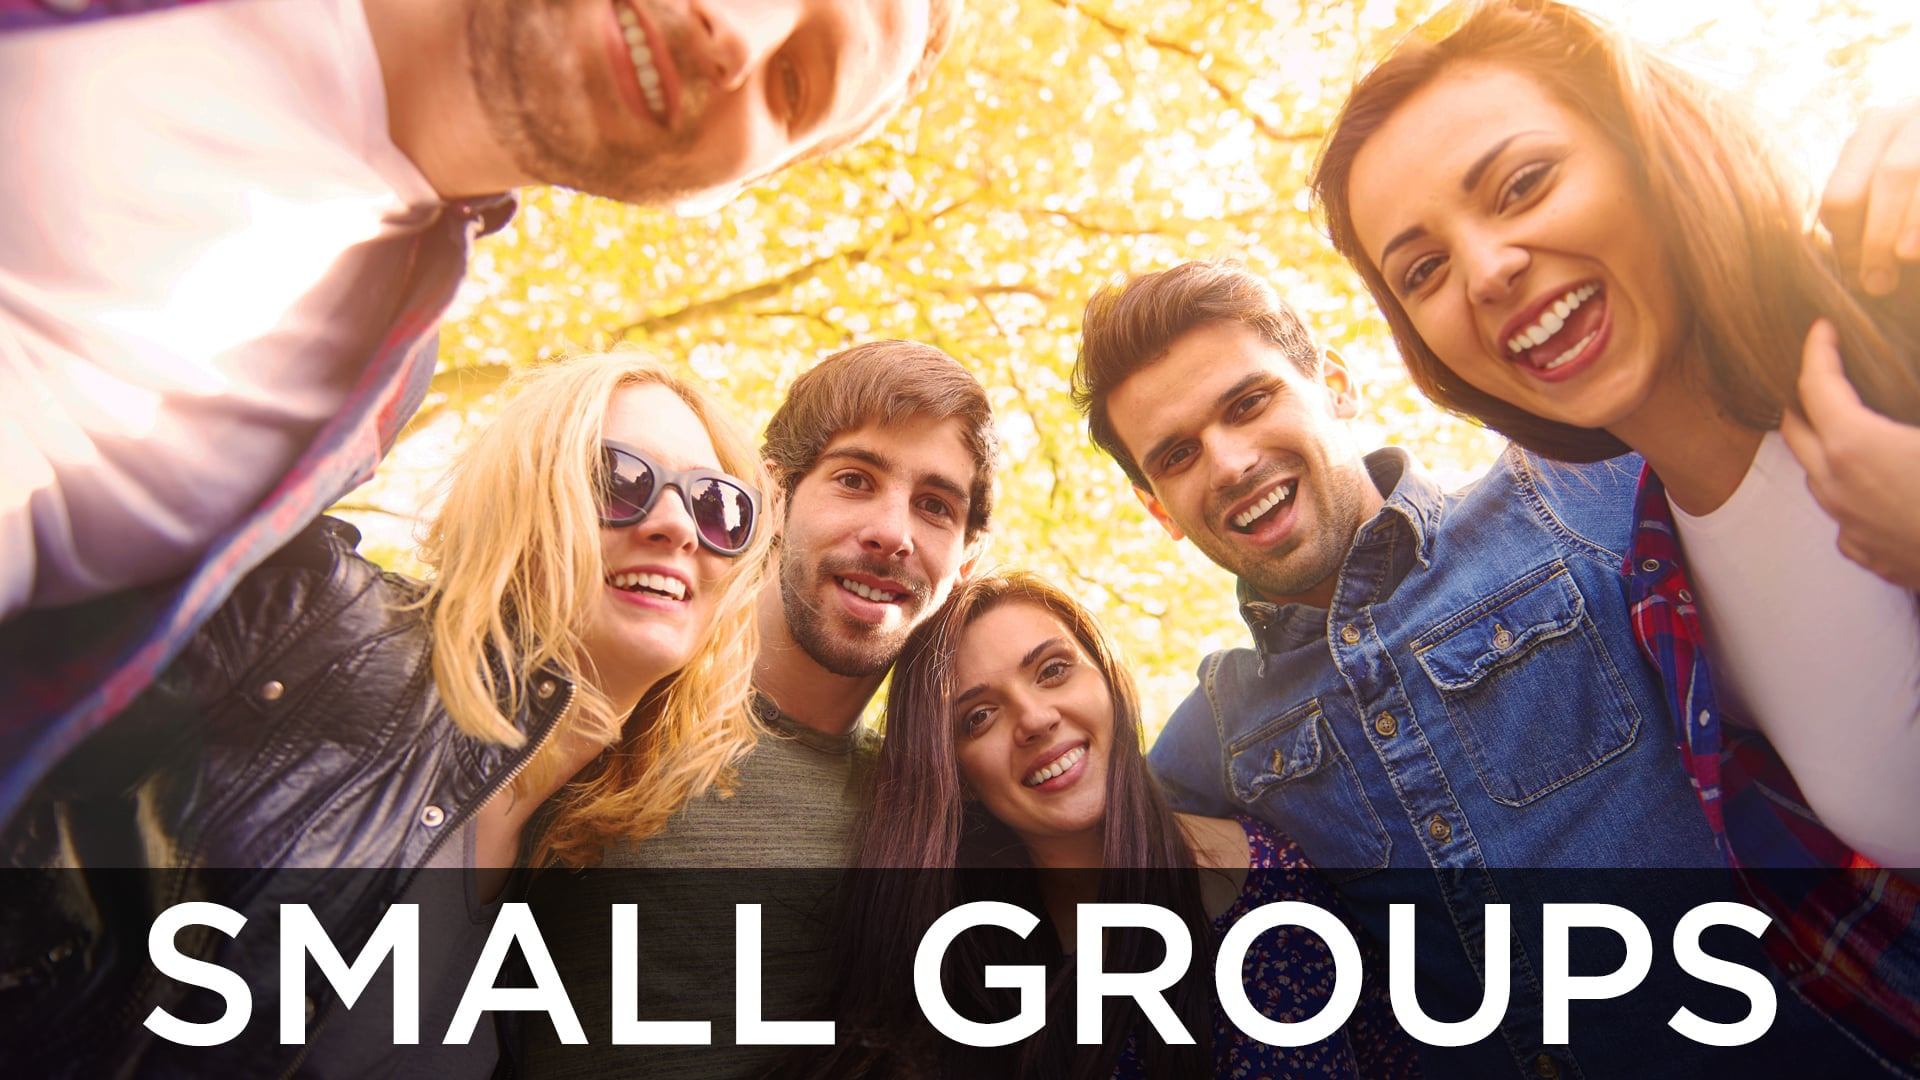 SMALL GROUPS ARE IMPORTANT